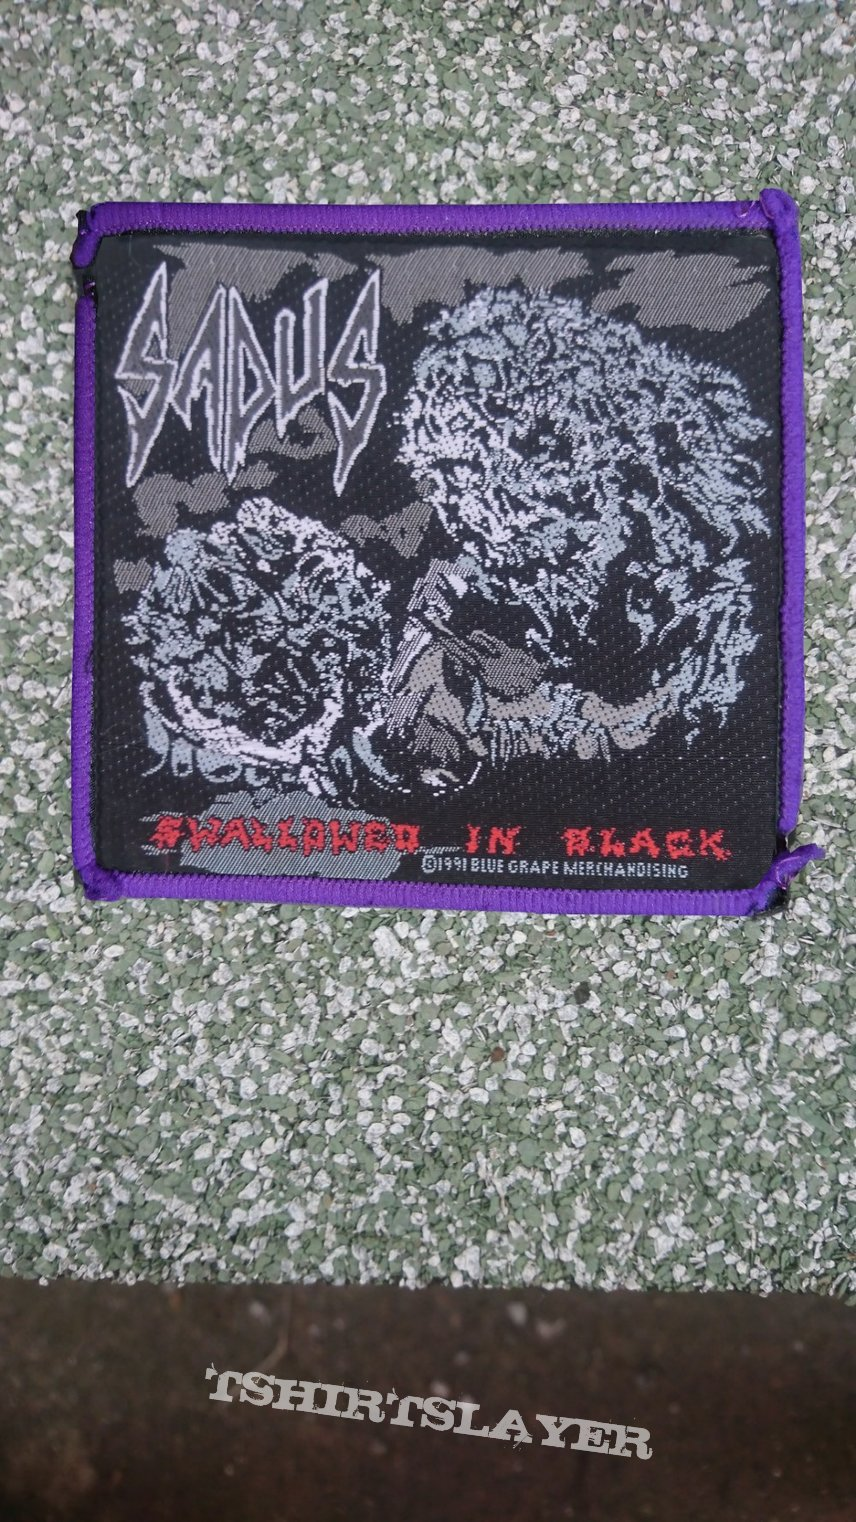 Wanted patches